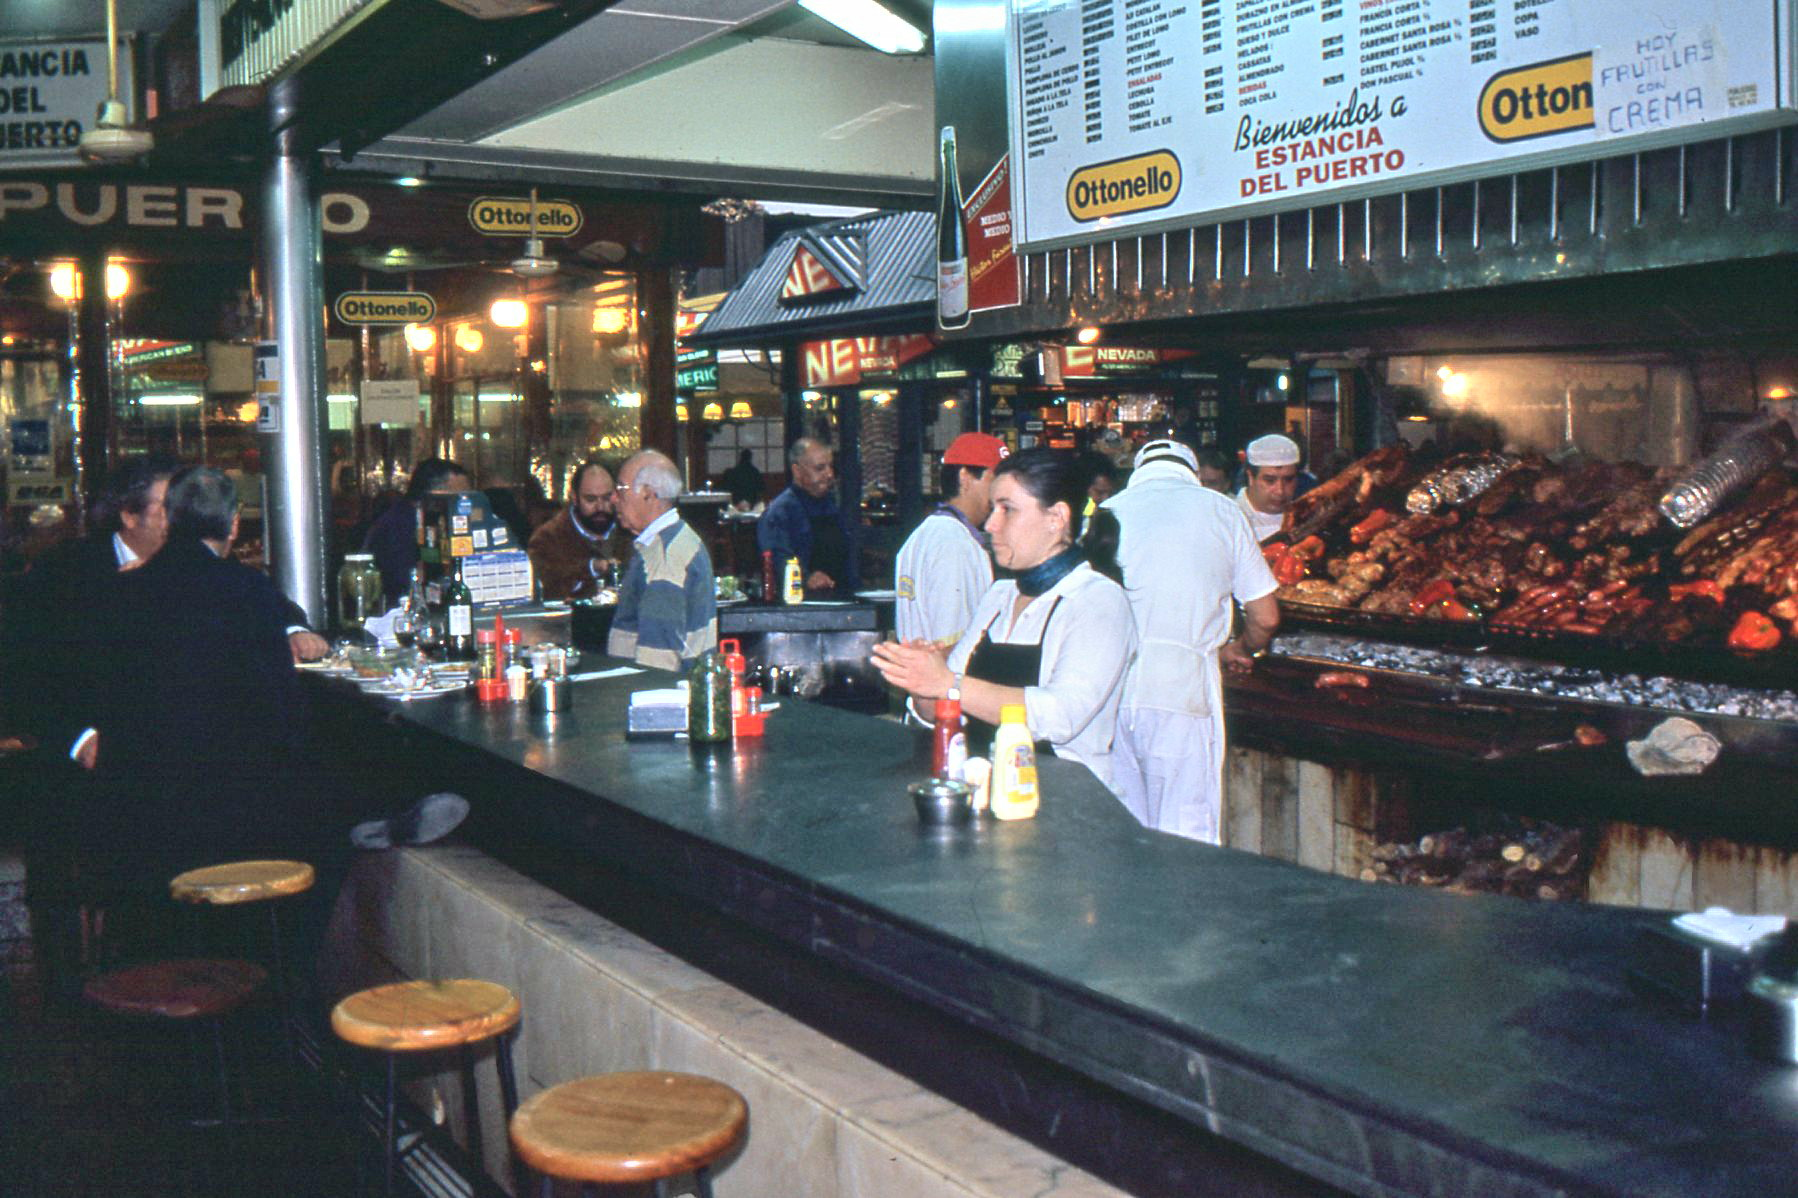 Over a dozen parilladas (small bistros) offer fish and barbequed meats under the vast skylights of Mercado del Puerto.